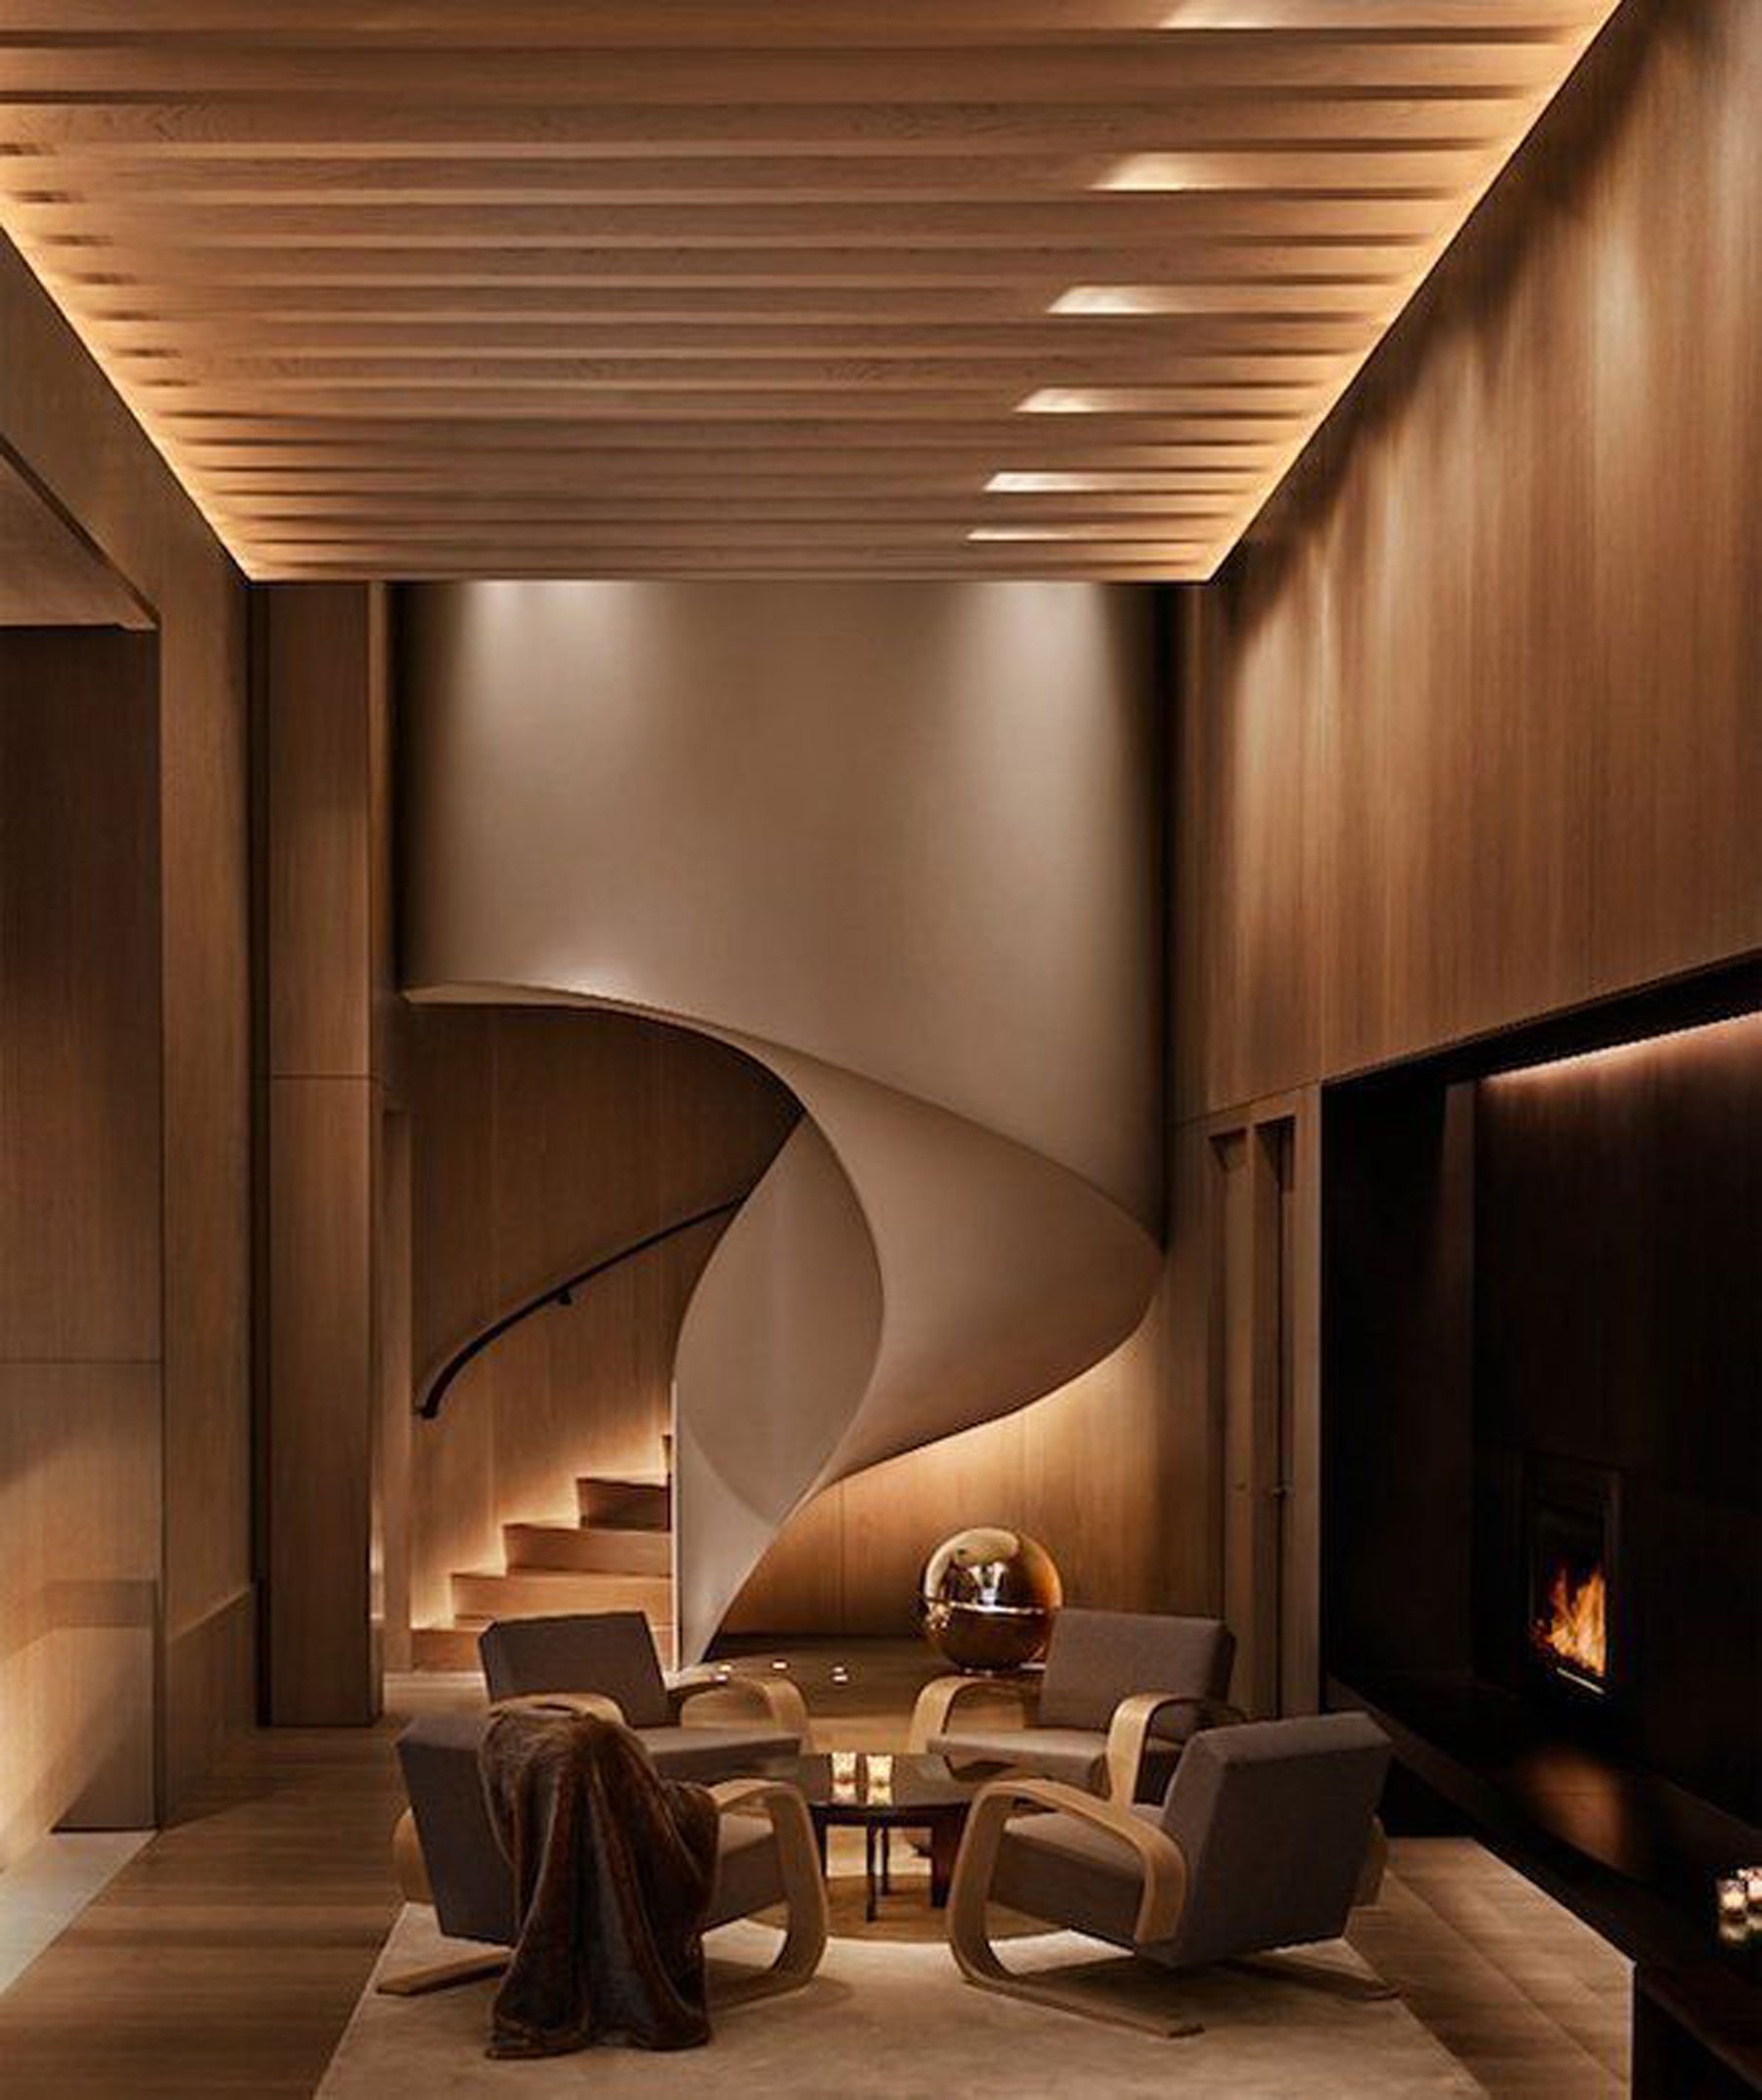 Coffee Table at Edition Hotel New York by Sentient Furniture